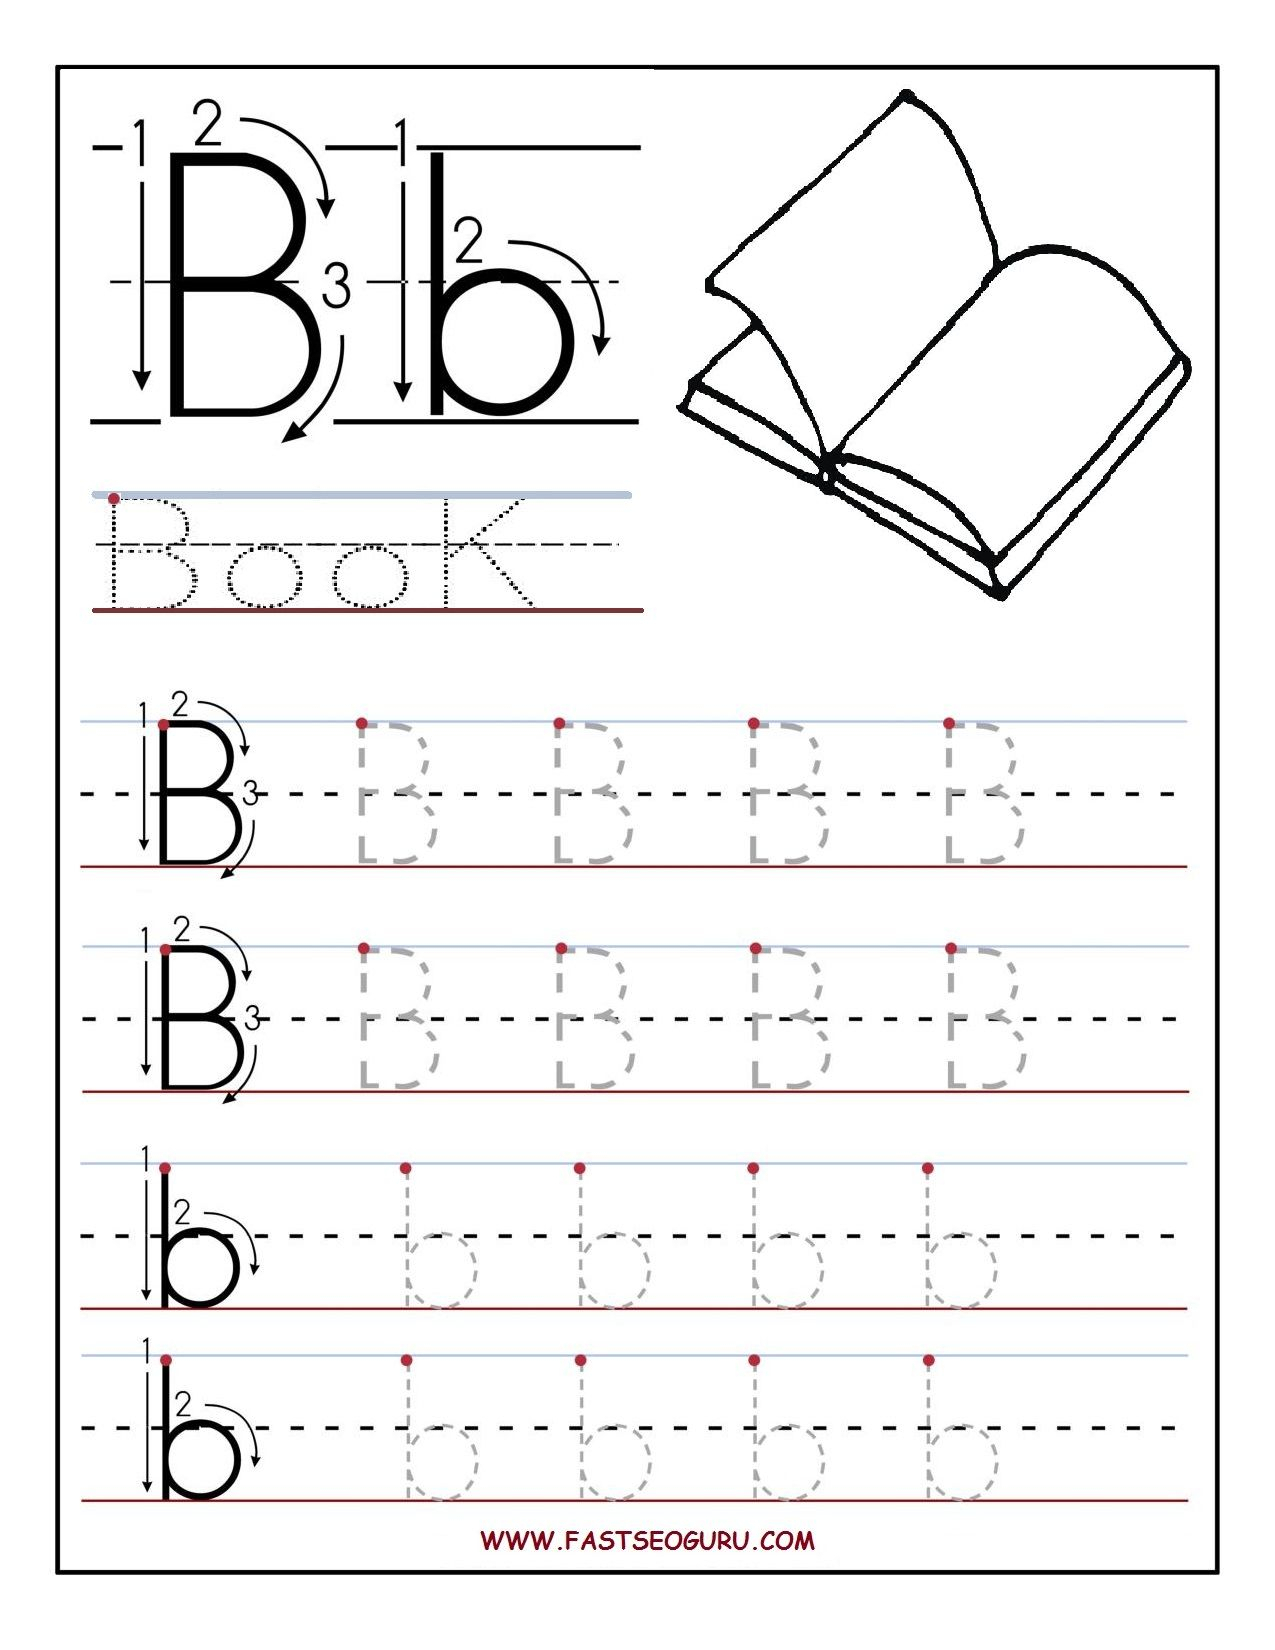 Printable Letter B Tracing Worksheets For Preschool | Letter regarding Letter B Worksheets Free Printables